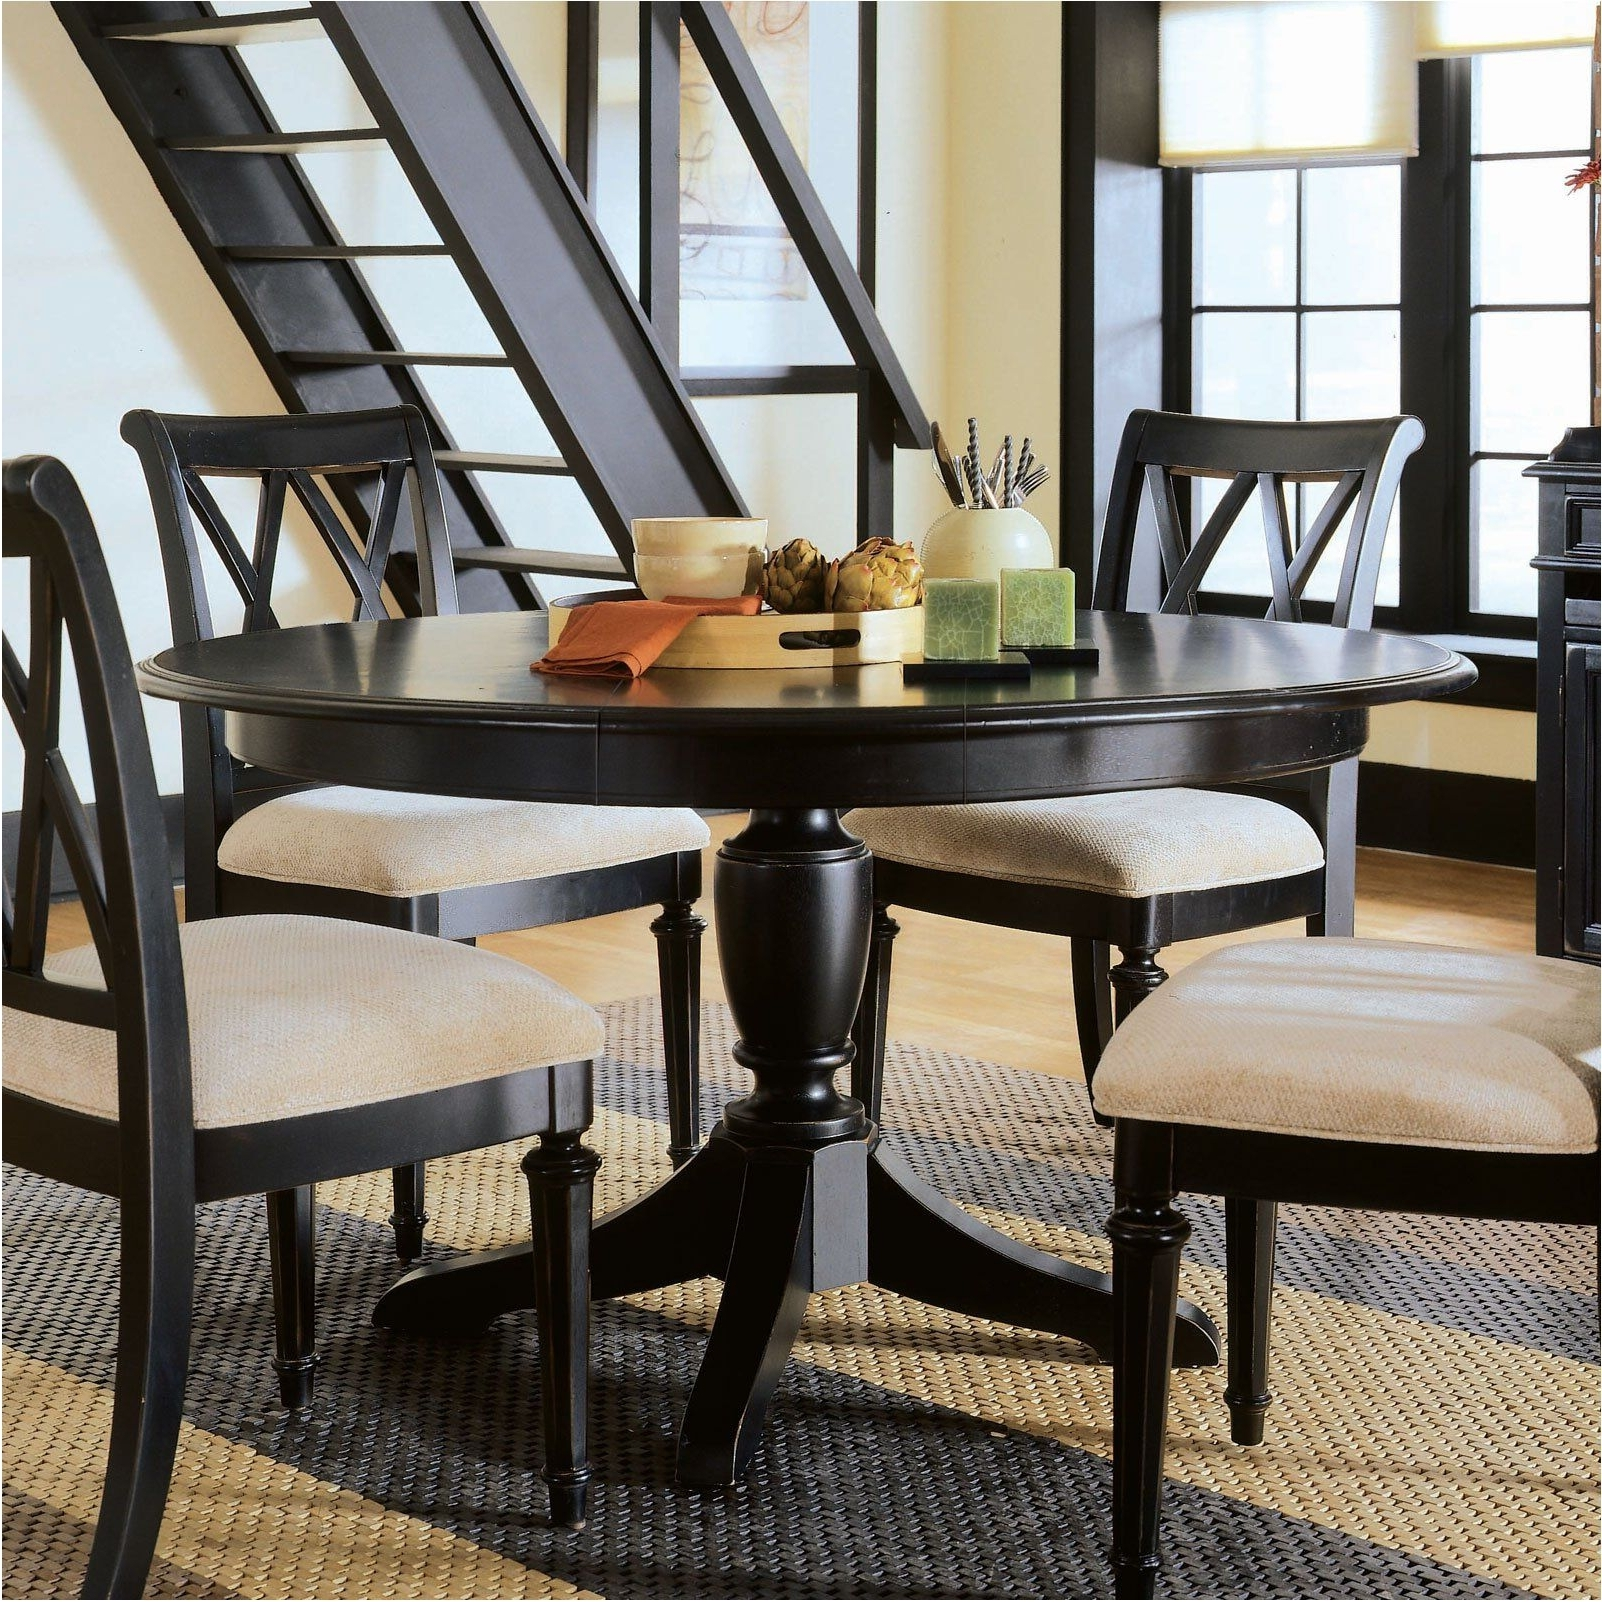 Dark Round Dining Tables With Most Recent Extraordinary Dark Wood Round Dining Table : Table (View 8 of 25)